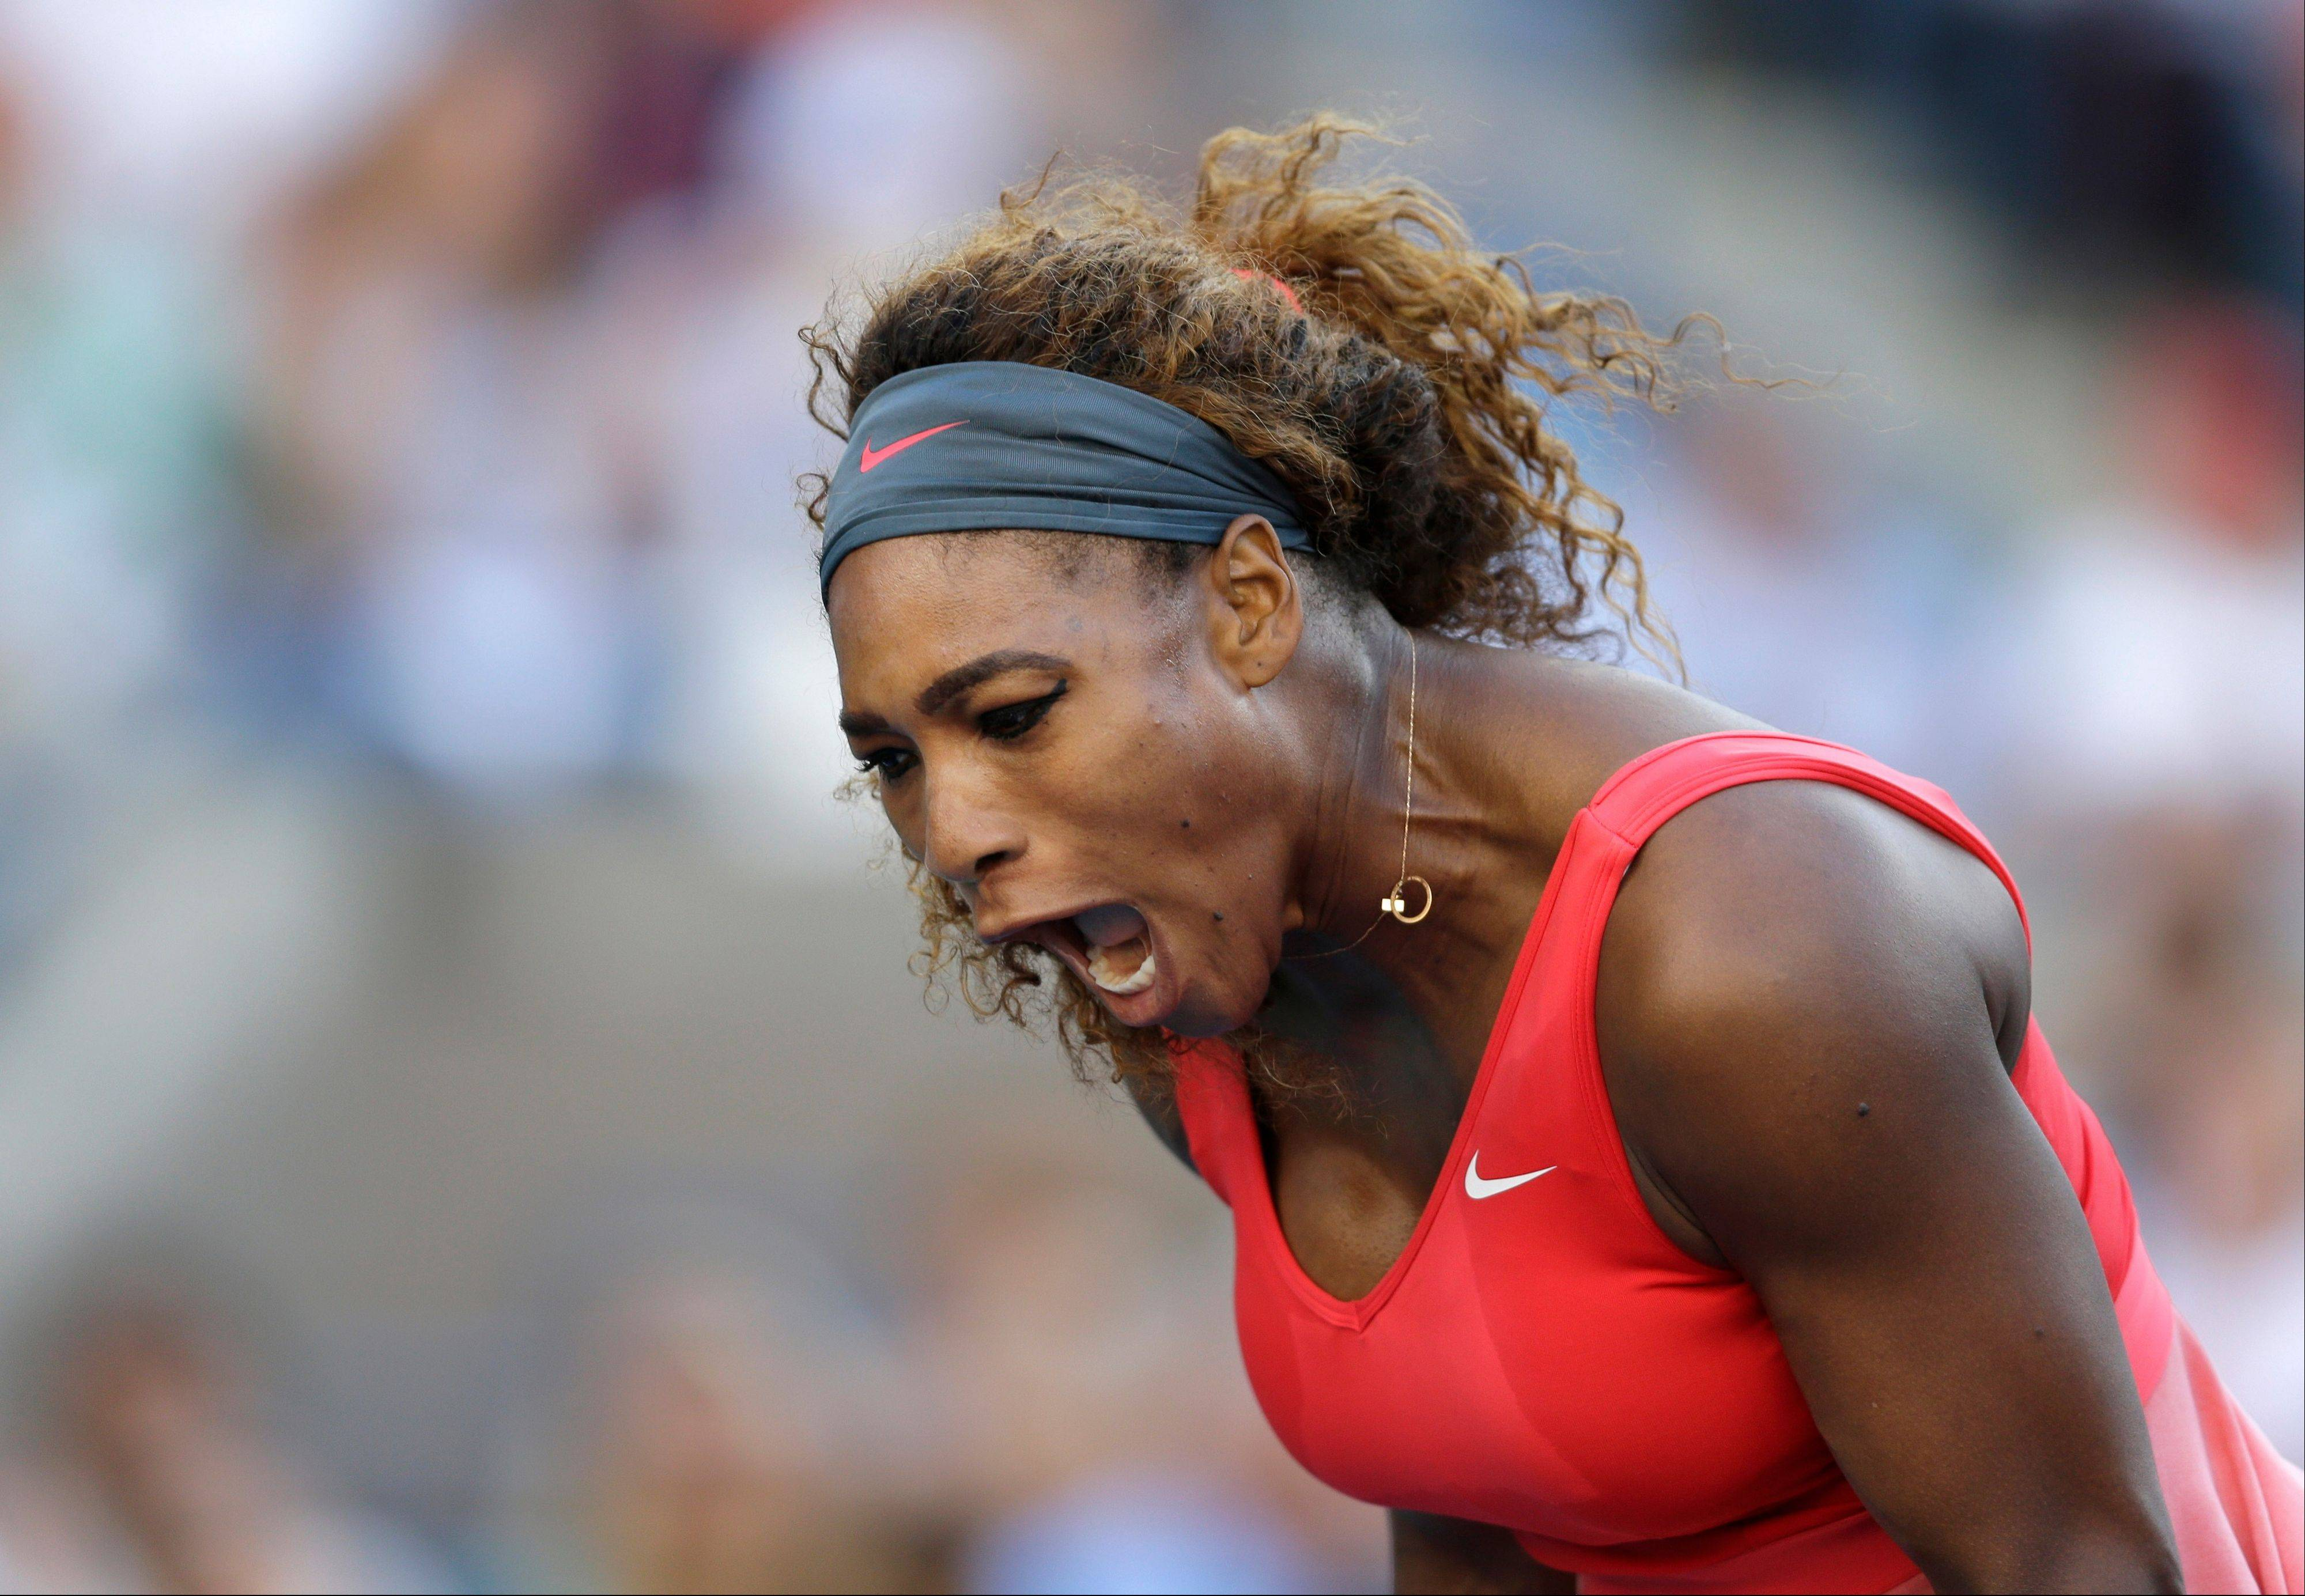 Serena Williams reacts after a point against Victoria Azarenka, of Belarus, during the women�s singles final of the 2013 U.S. Open tennis tournament, Sunday, Sept. 8, 2013, in New York.